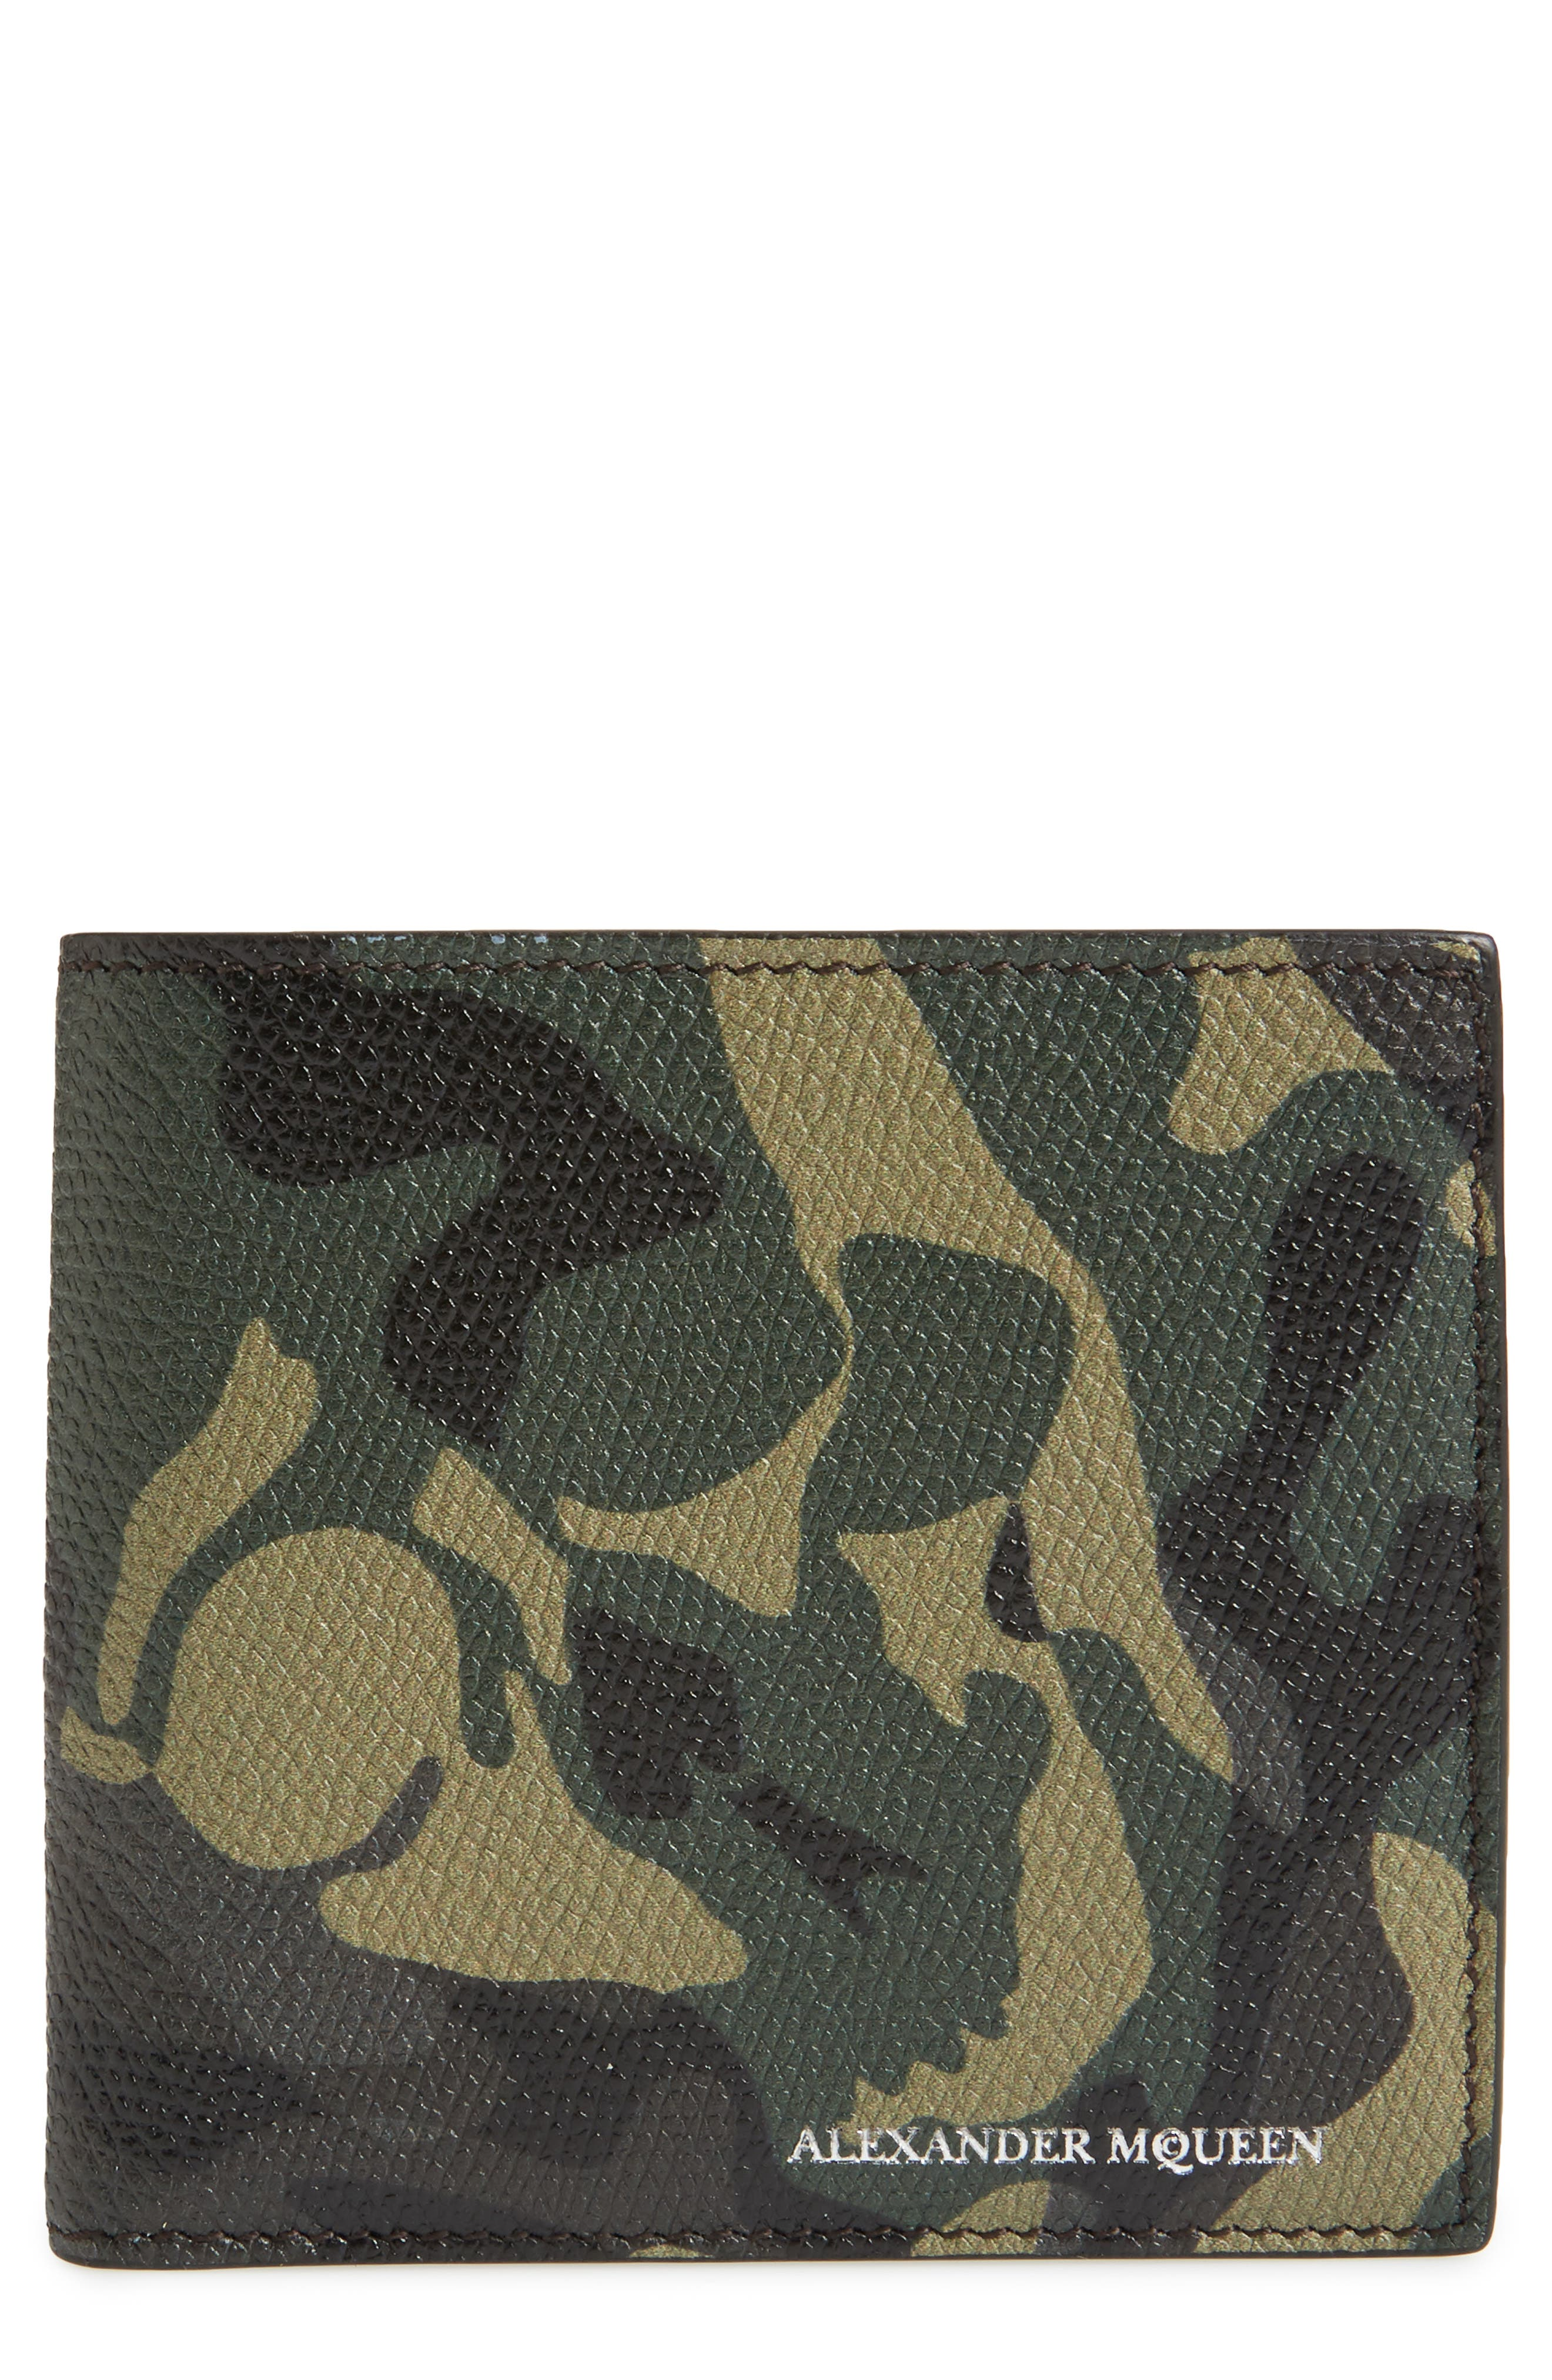 Camo Leather Billfold Wallet,                         Main,                         color, 009